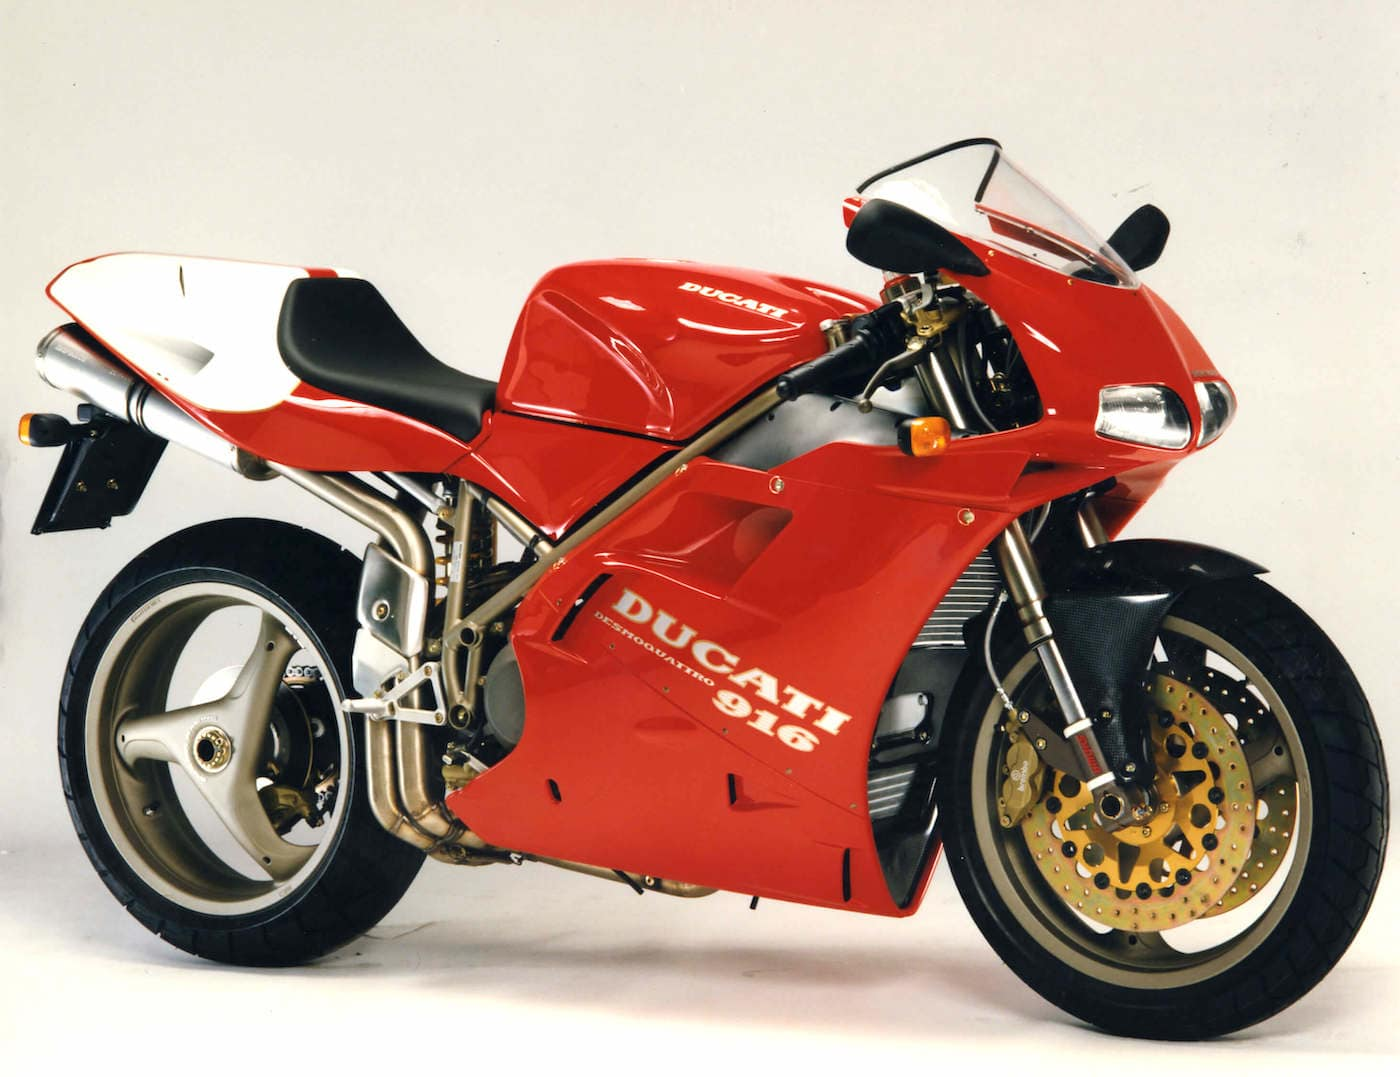 The Ducati 916SP - very rare! One of the rarest and coolest Ducati superbikes to buy